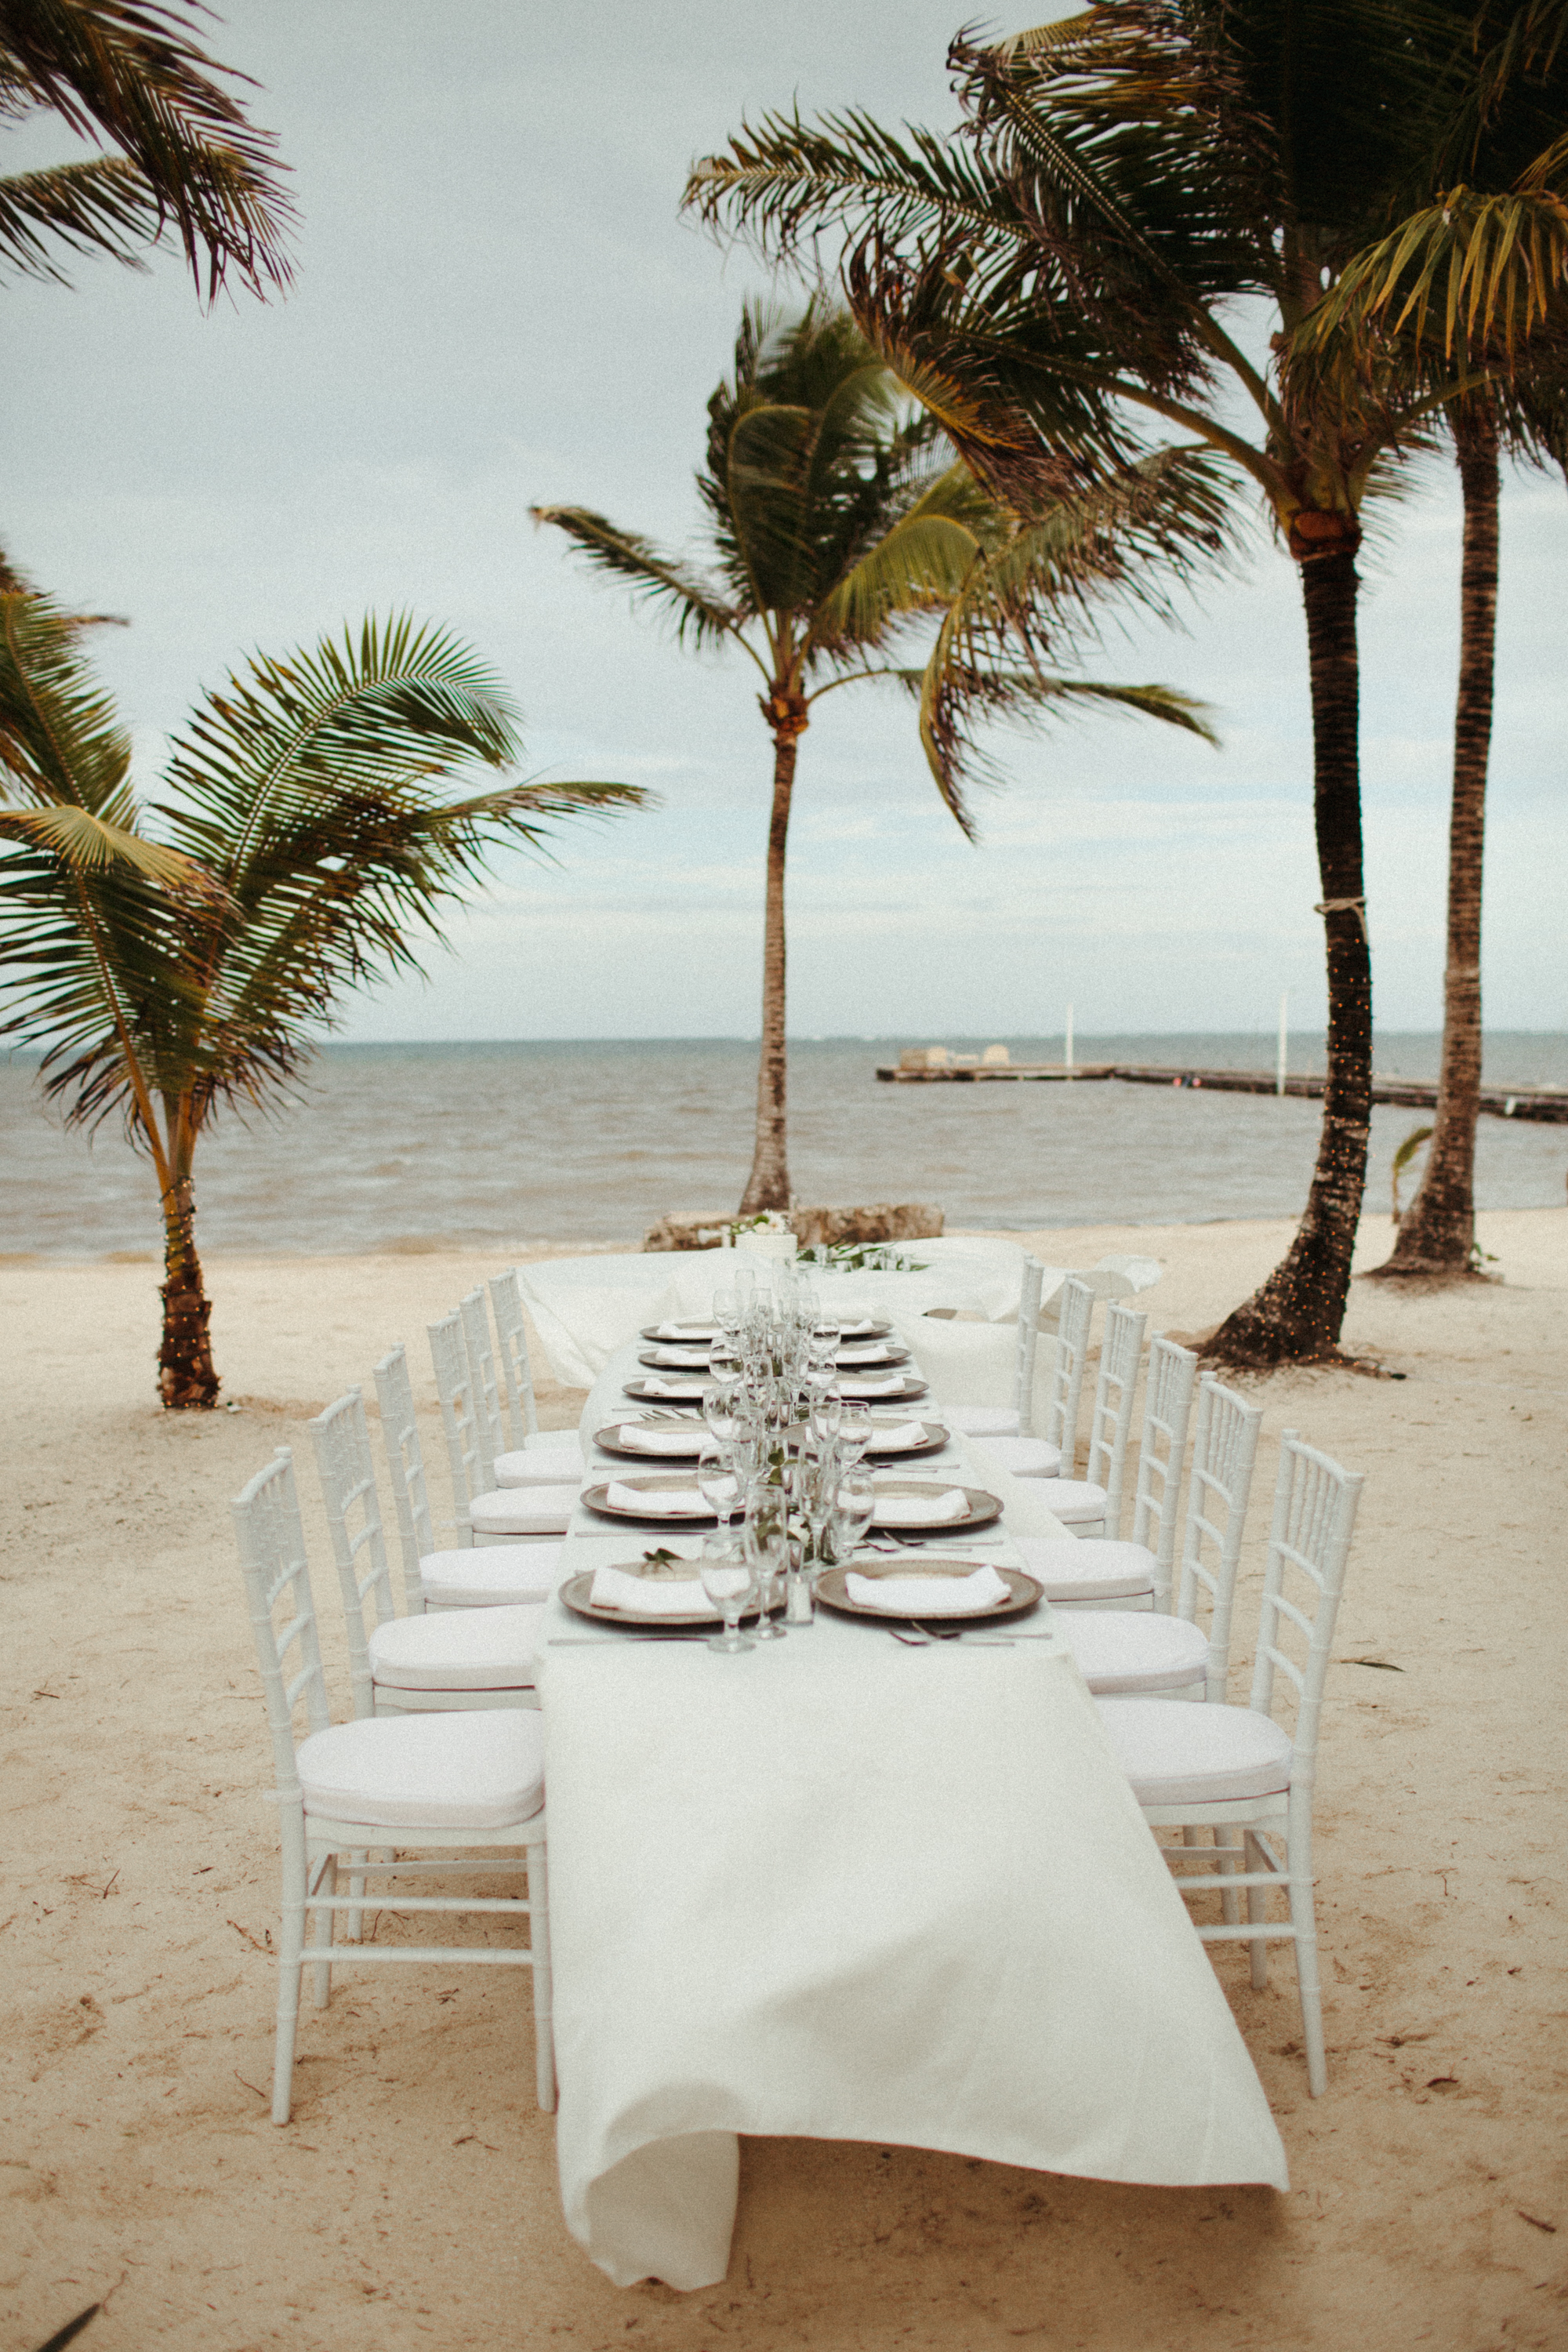 san-pescador-belize-wedding-christinemariephoto-j-k-76.jpg